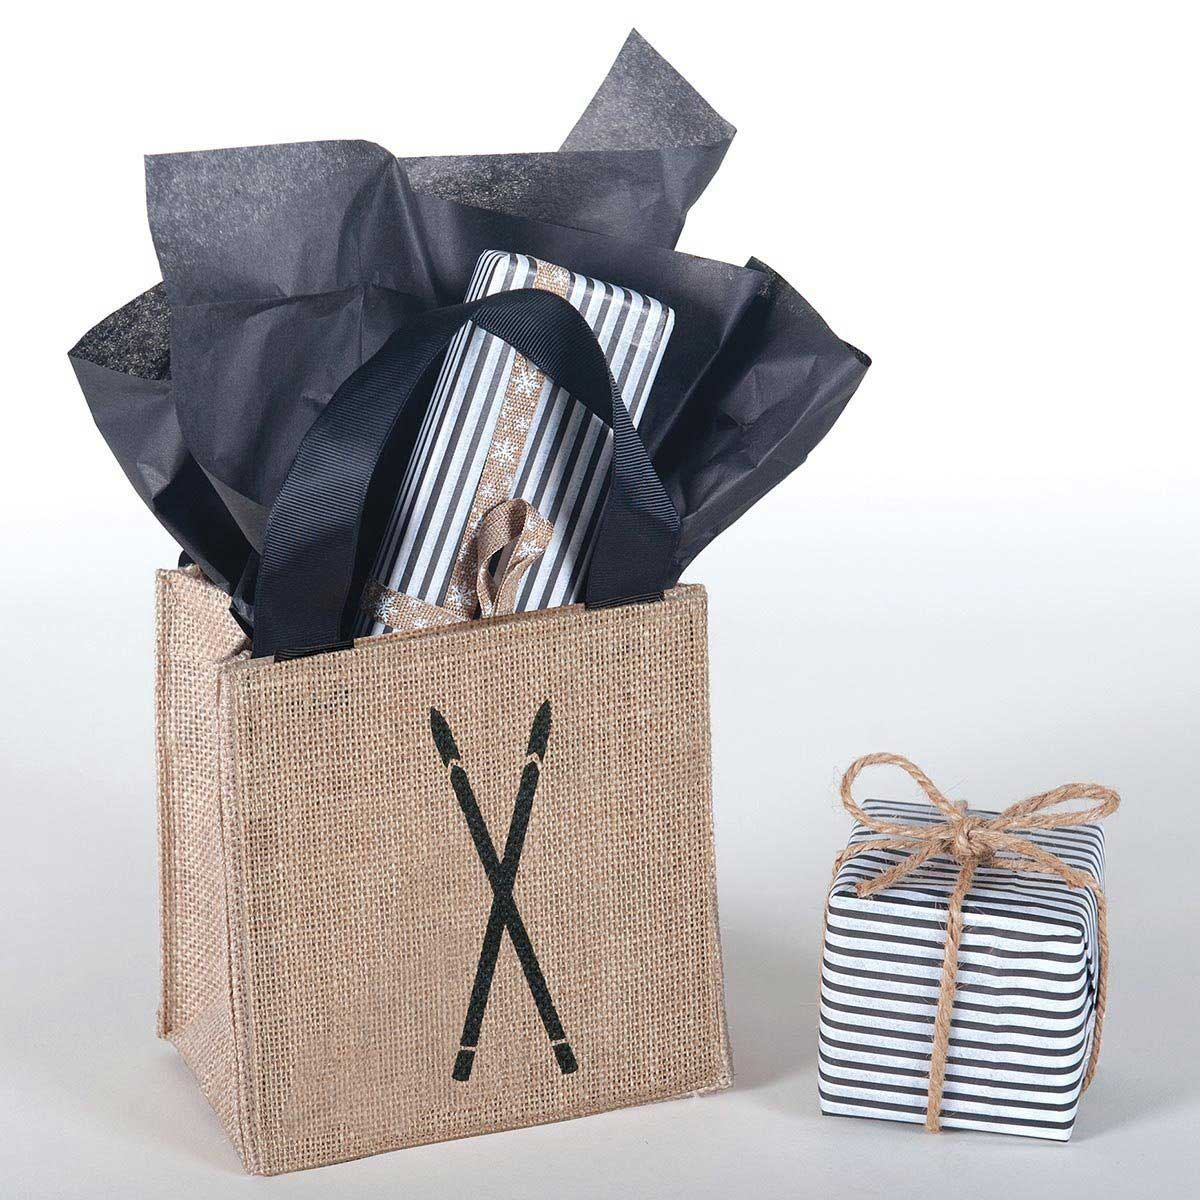 rustic jute gift tote bag with black ski vintage ski print and black grosgrain ribbon handles